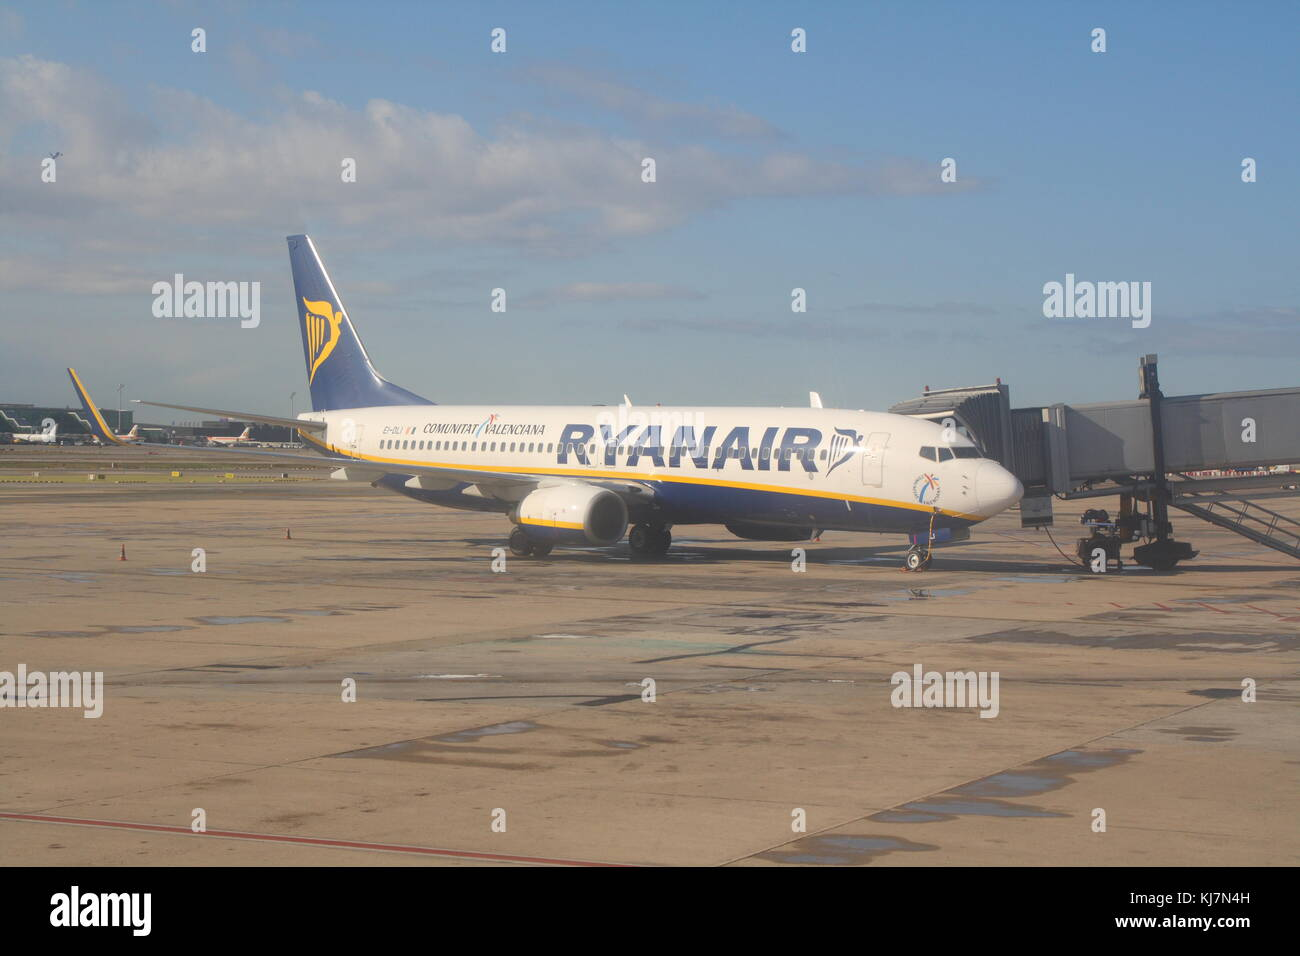 Barcelona Airport Taxi Stock Photos & Barcelona Airport Taxi Stock Images - Alamy